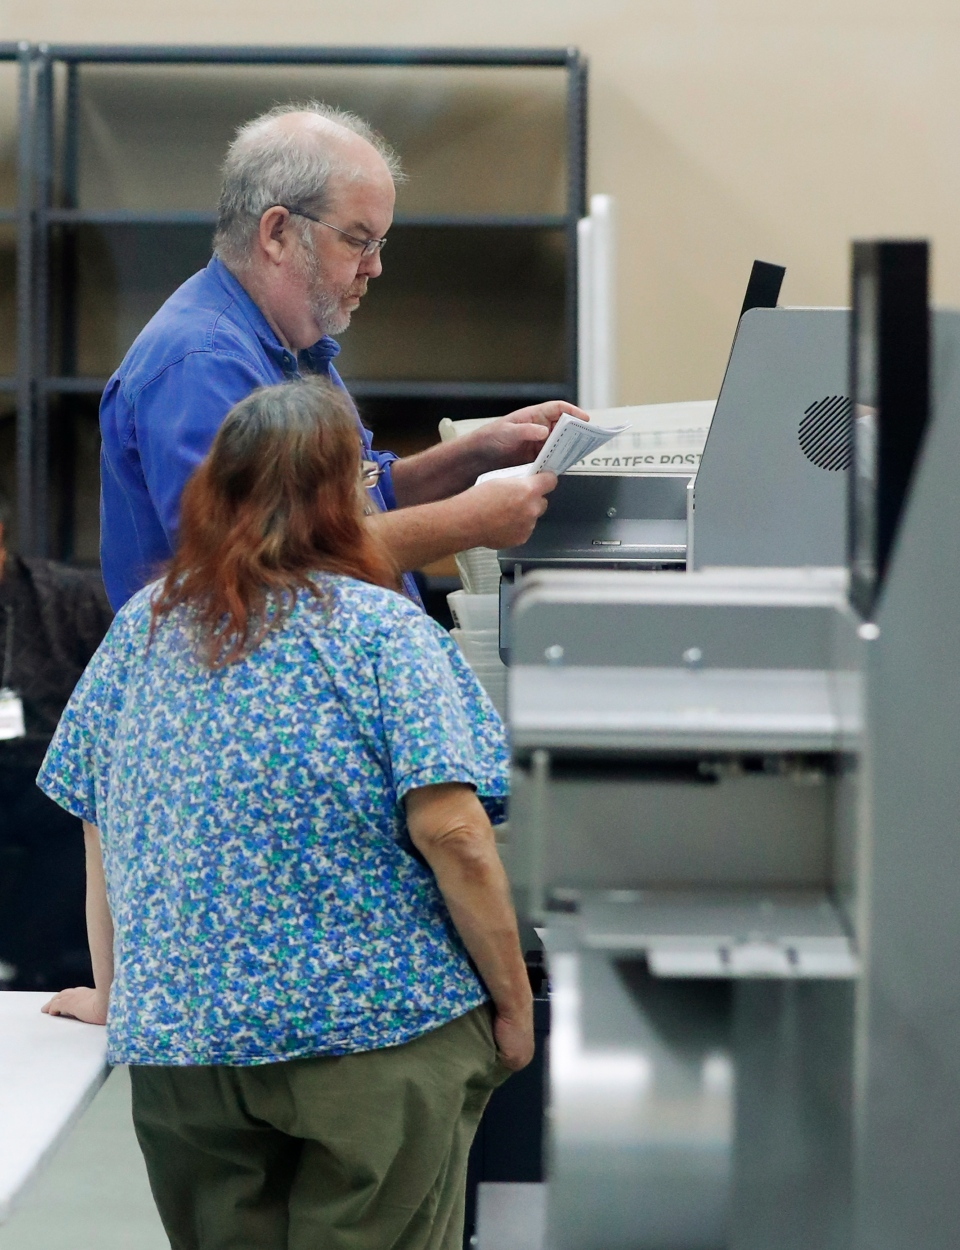 Employees at the Broward County Supervisor of Elections office calibrate machines before counting ballots, Monday, Nov. 12, 2018, in Lauderhill, Fla. (AP Photo/Wilfredo Lee)